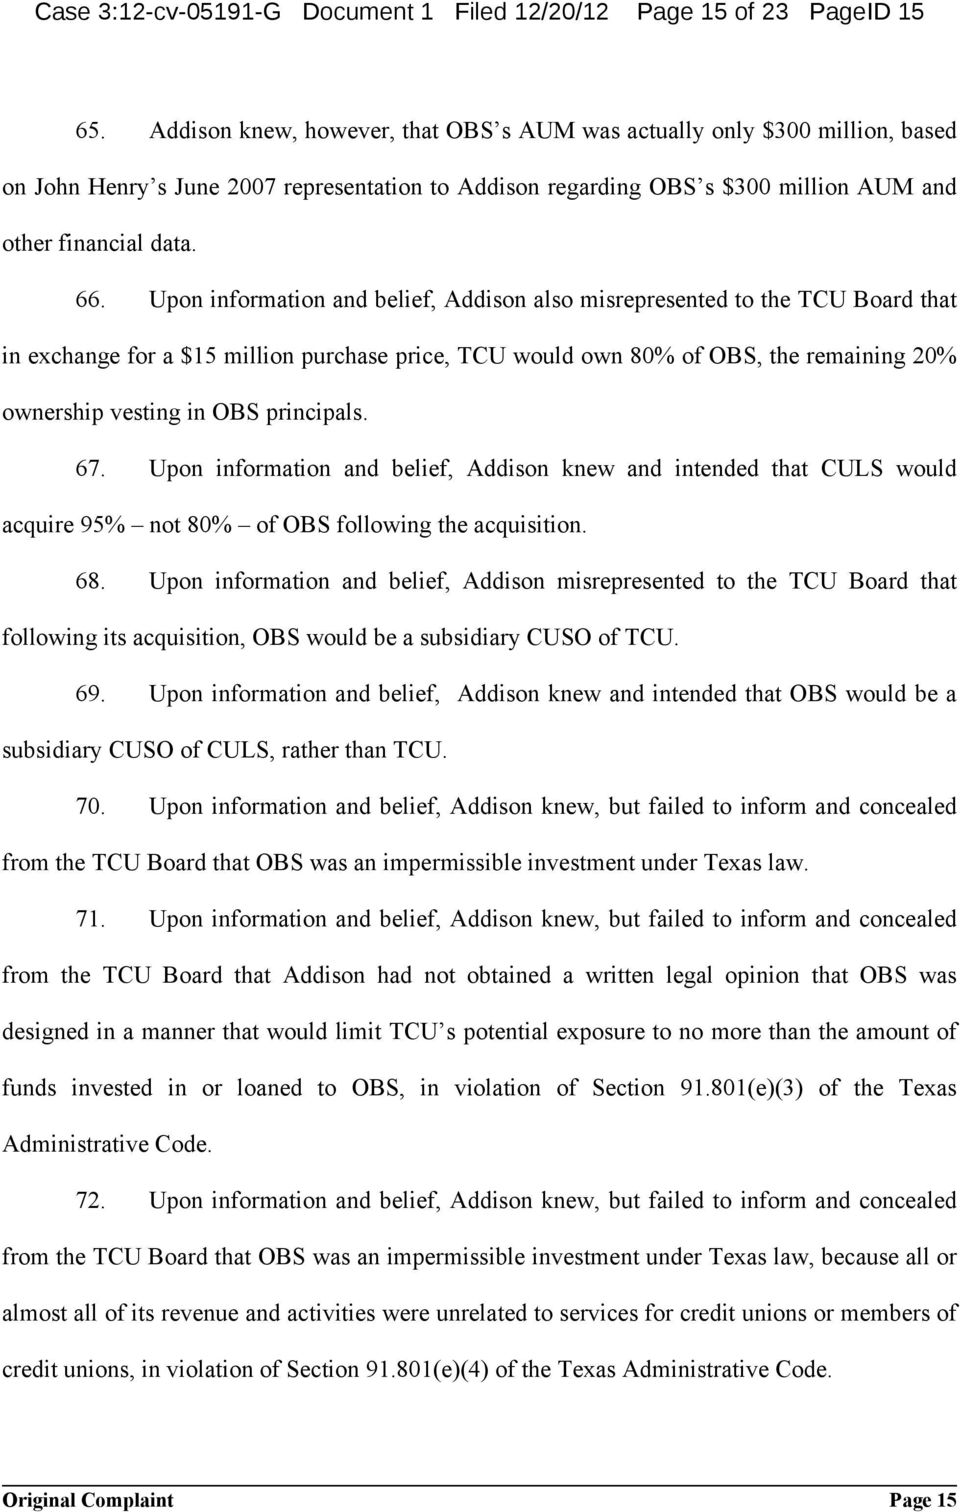 Upon information and belief, Addison also misrepresented to the TCU Board that in exchange for a $15 million purchase price, TCU would own 80% of OBS, the remaining 20% ownership vesting in OBS